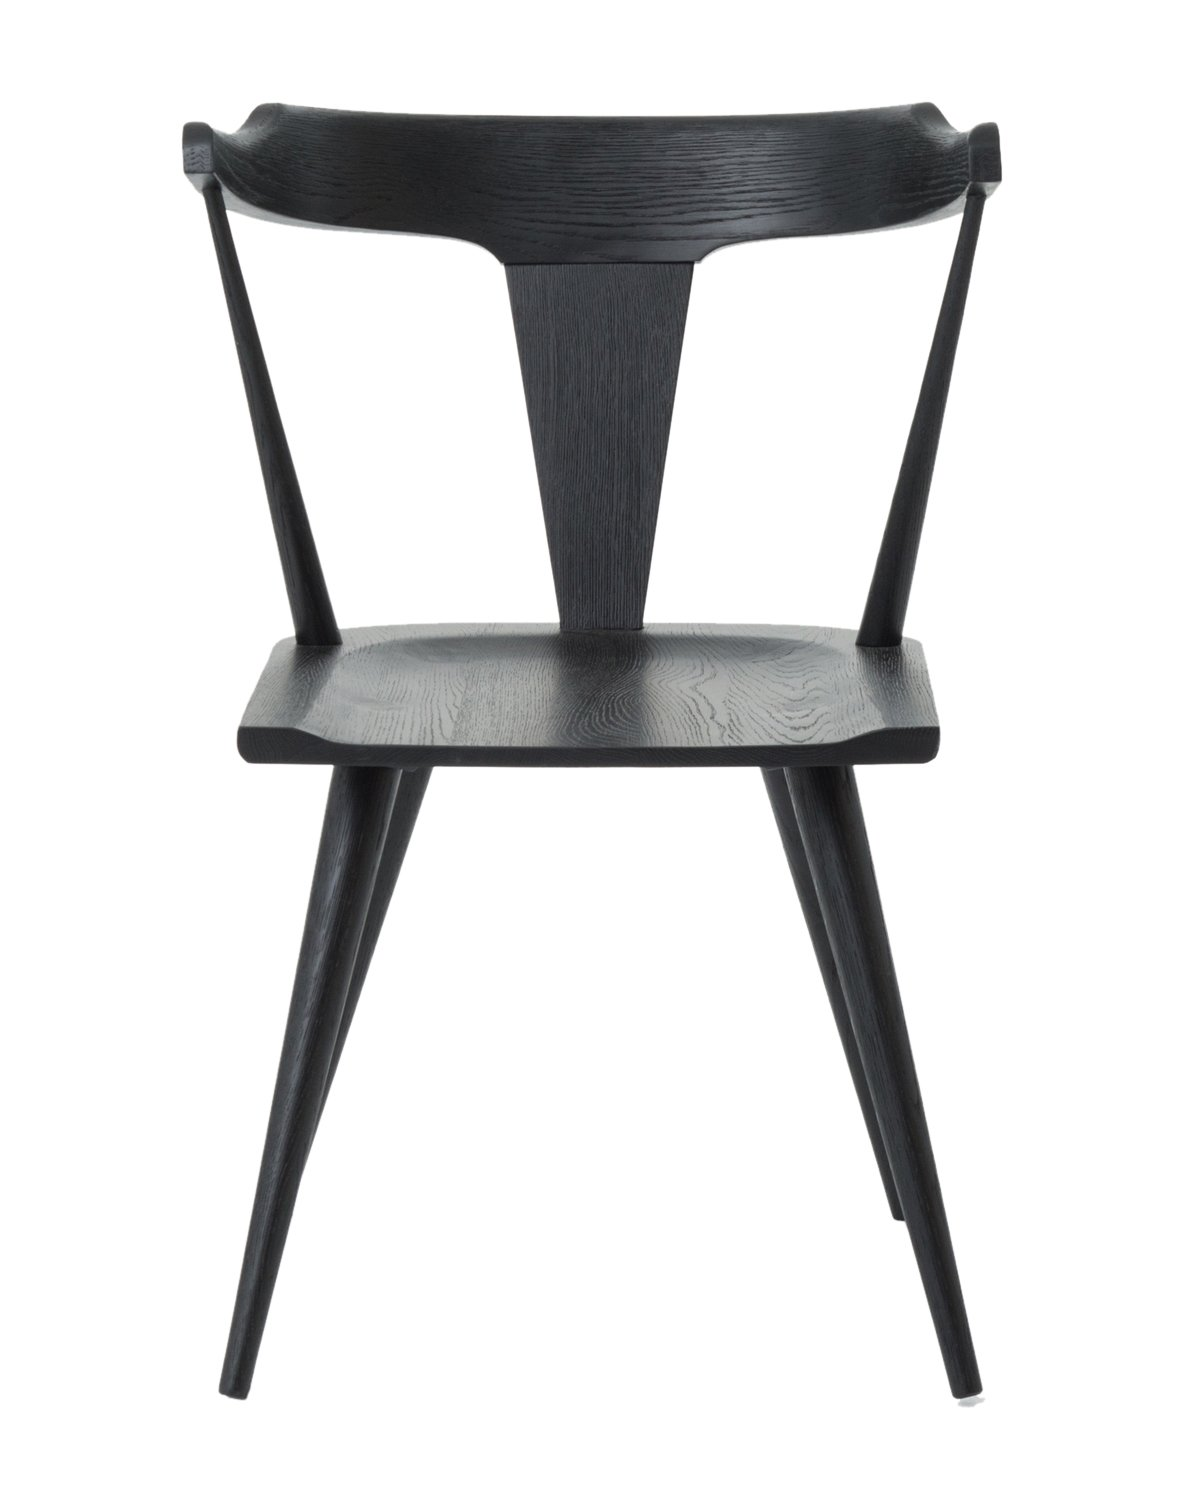 Ruthie_Dining_Chair_7_f042cfb3-201d-4365-9be7-79d5fa52fea2 2.jpg